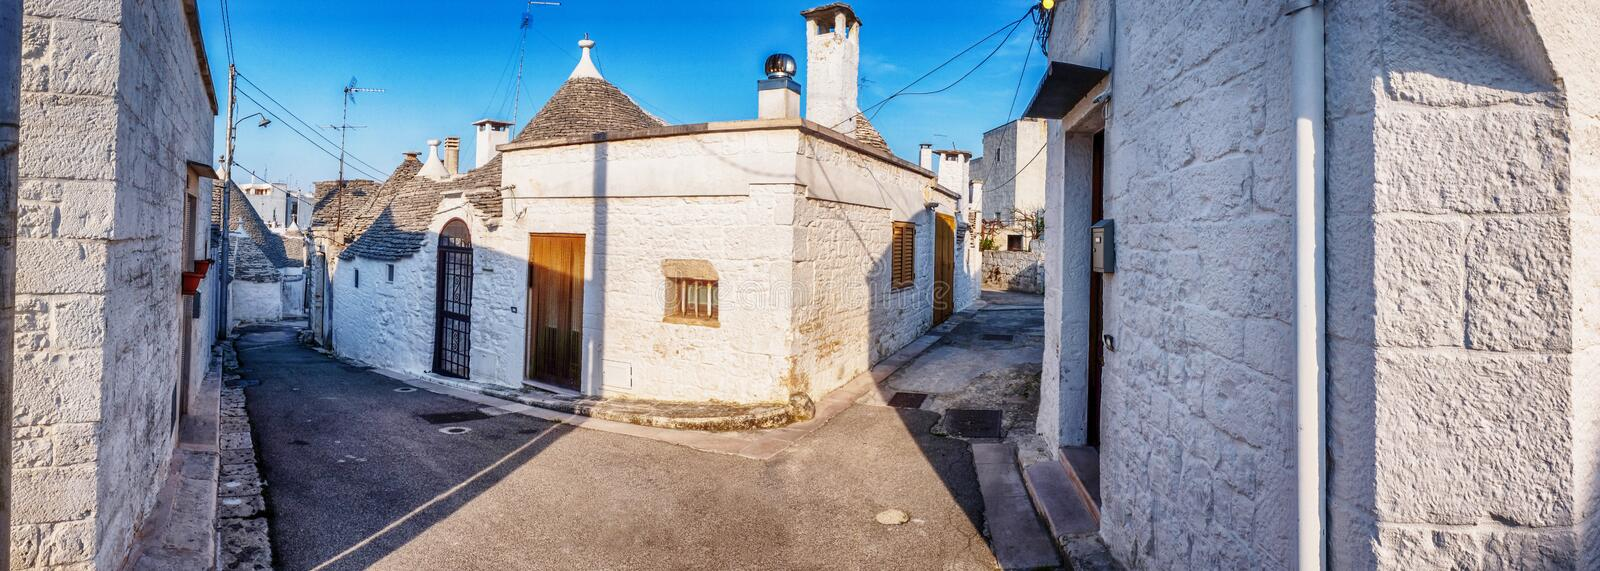 Village Alberobello with gabled trullo roofs, Puglia, Italy stock images